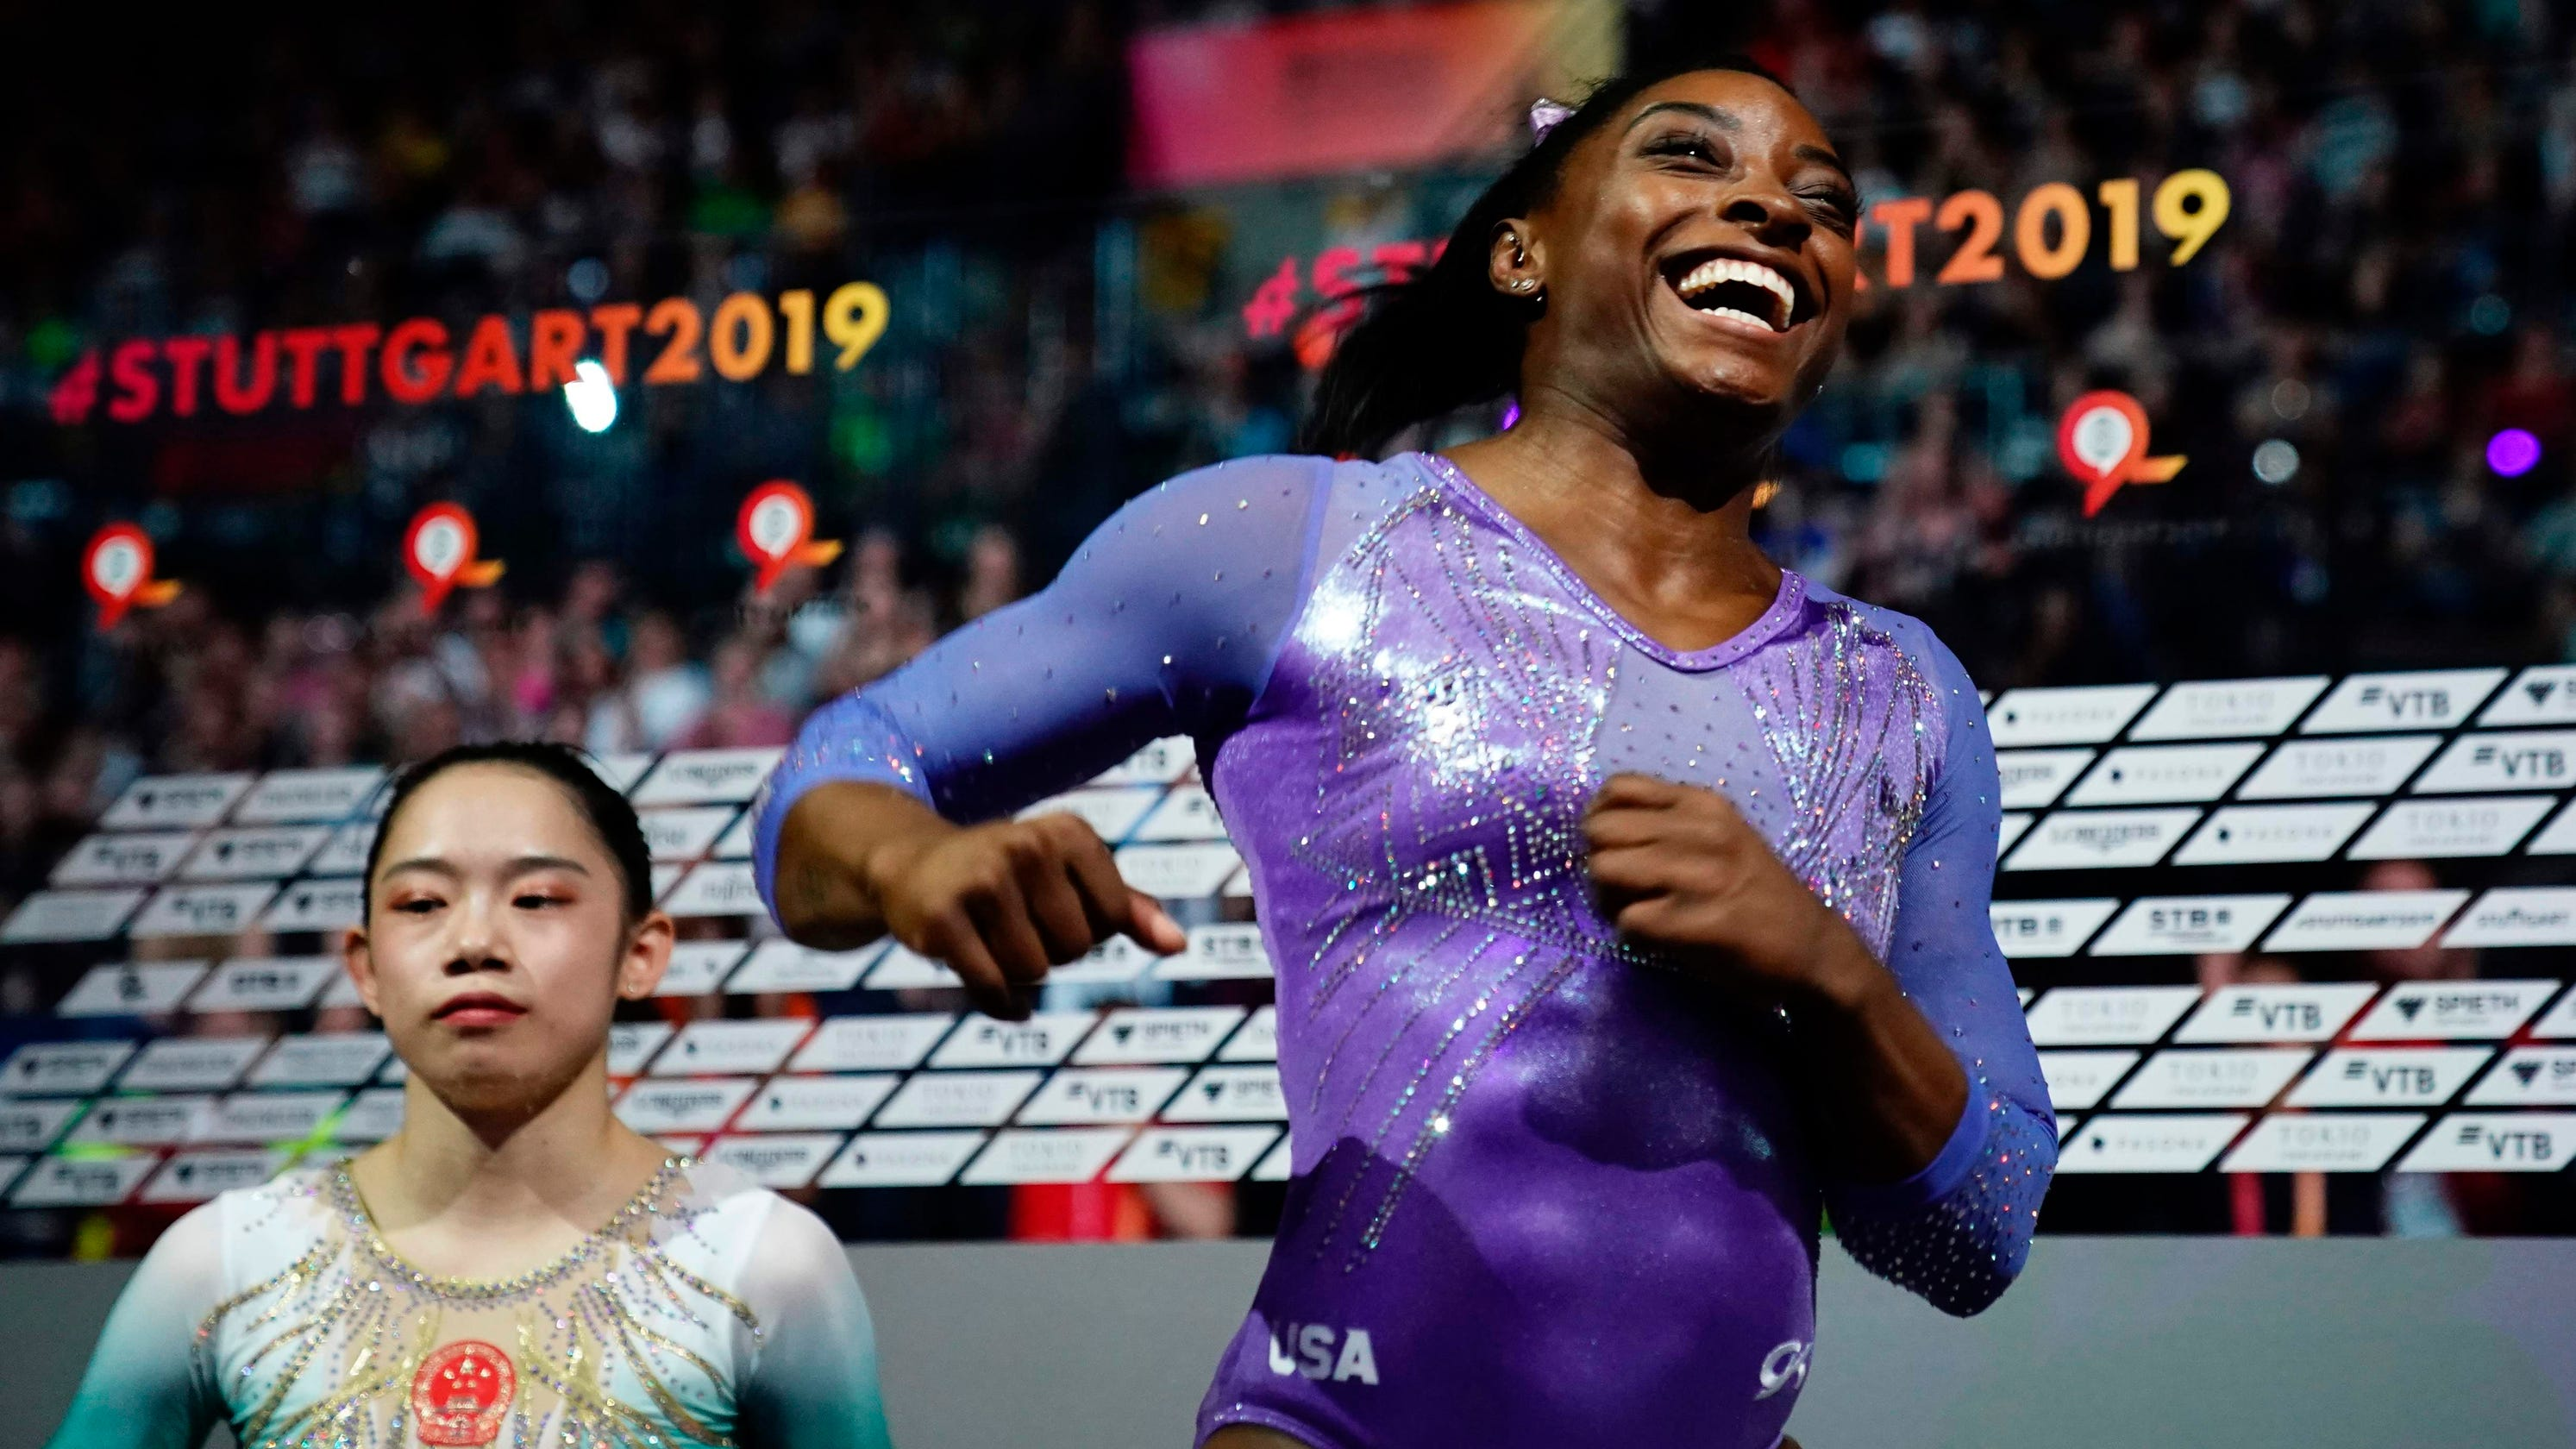 Simone Biles becomes most-decorated gymnast, male or female, at the world championships – USA TODAY